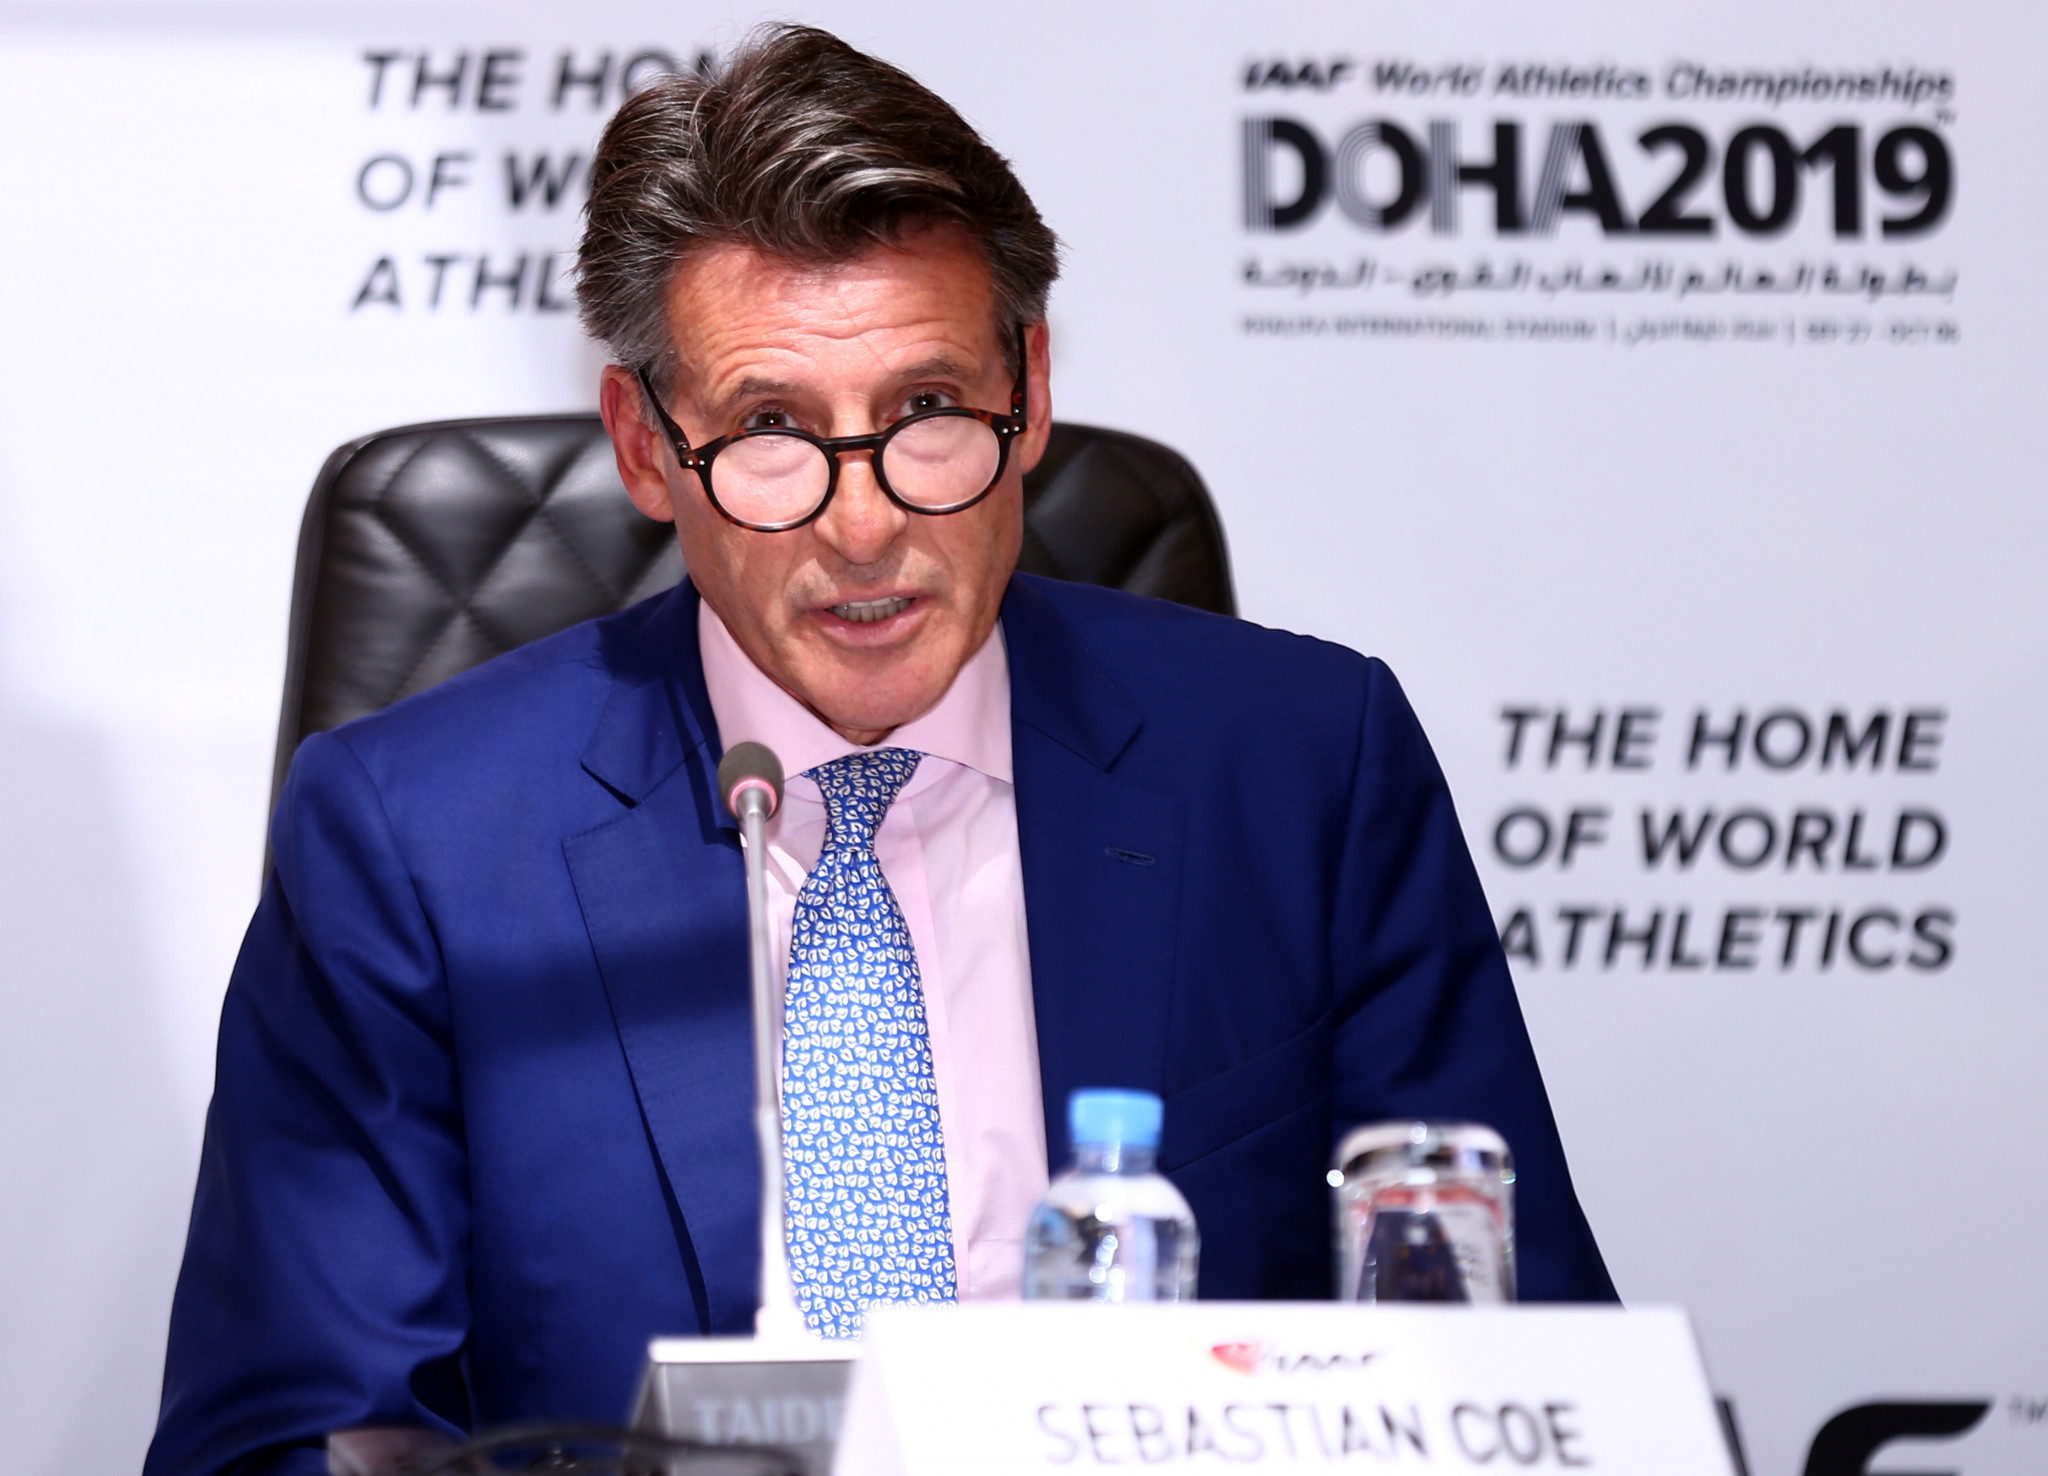 Coe confirms AIU looking into Kenyan doping claims in German media